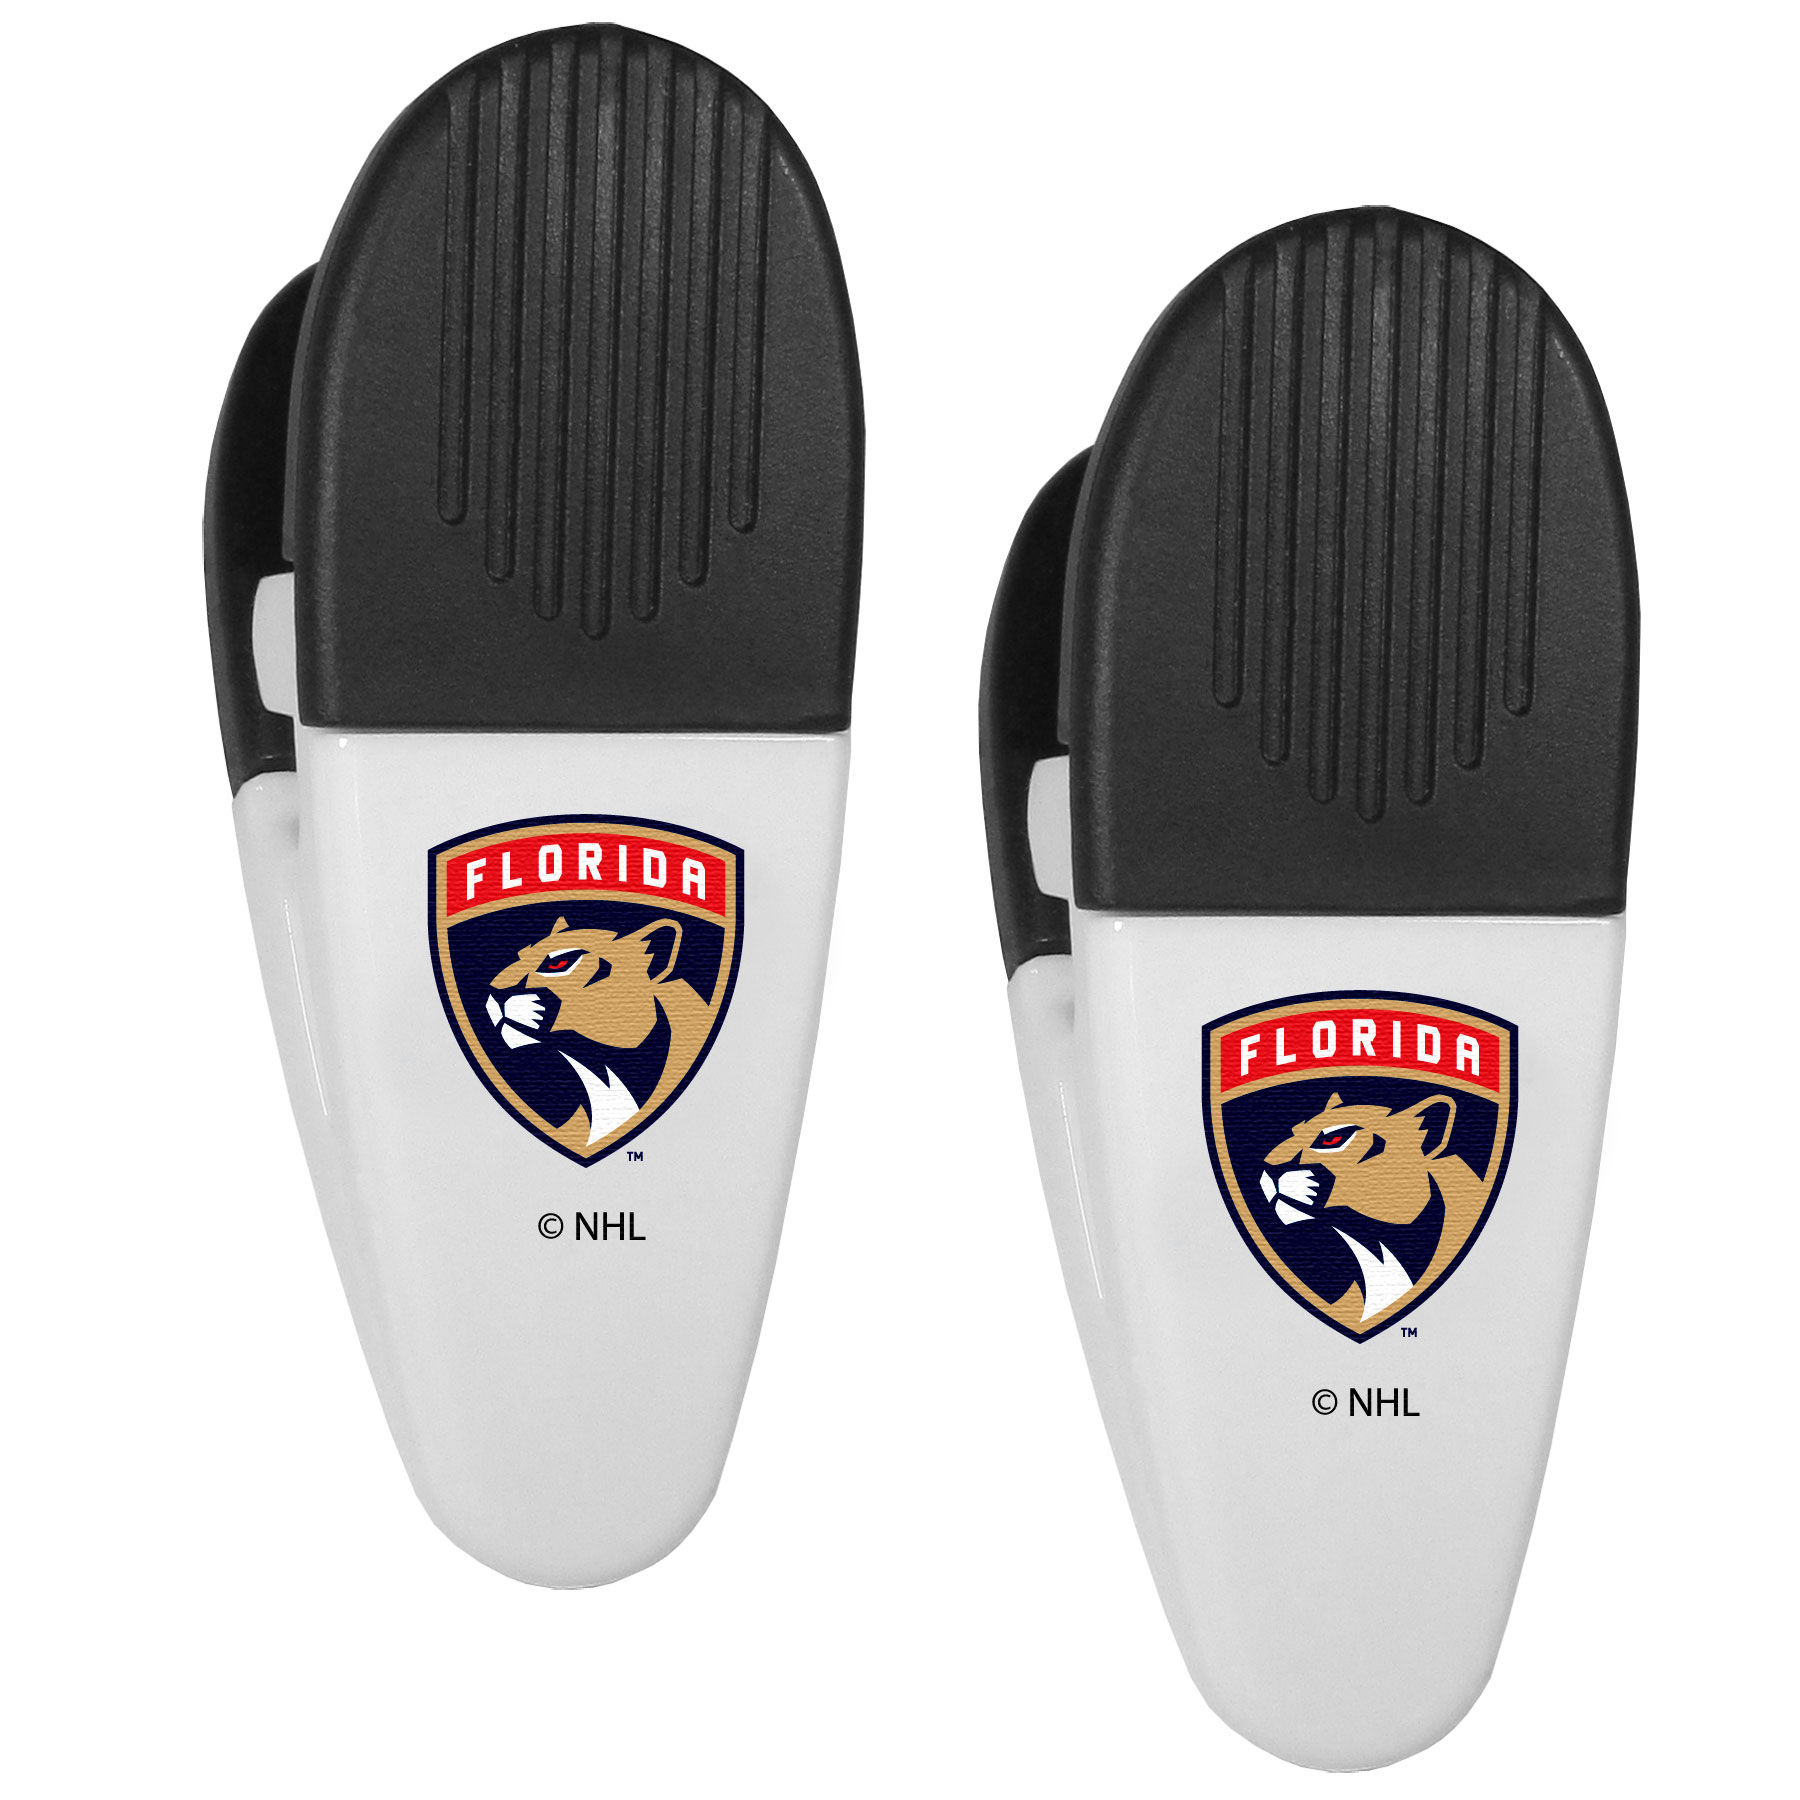 Florida Panthers® Mini Chip Clip Magnets, 2 pk - Our Florida Panthers® chip clip magnets feature a crisp team logo on the front of the clip. The clip is perfect for sealing chips for freshness and with the powerful magnet on the back it can be used to attach notes to the fridge or hanging your child's artwork. Set of 2 magnet clips, each clip is 3.5 inches tall and 1.25 inch wide.